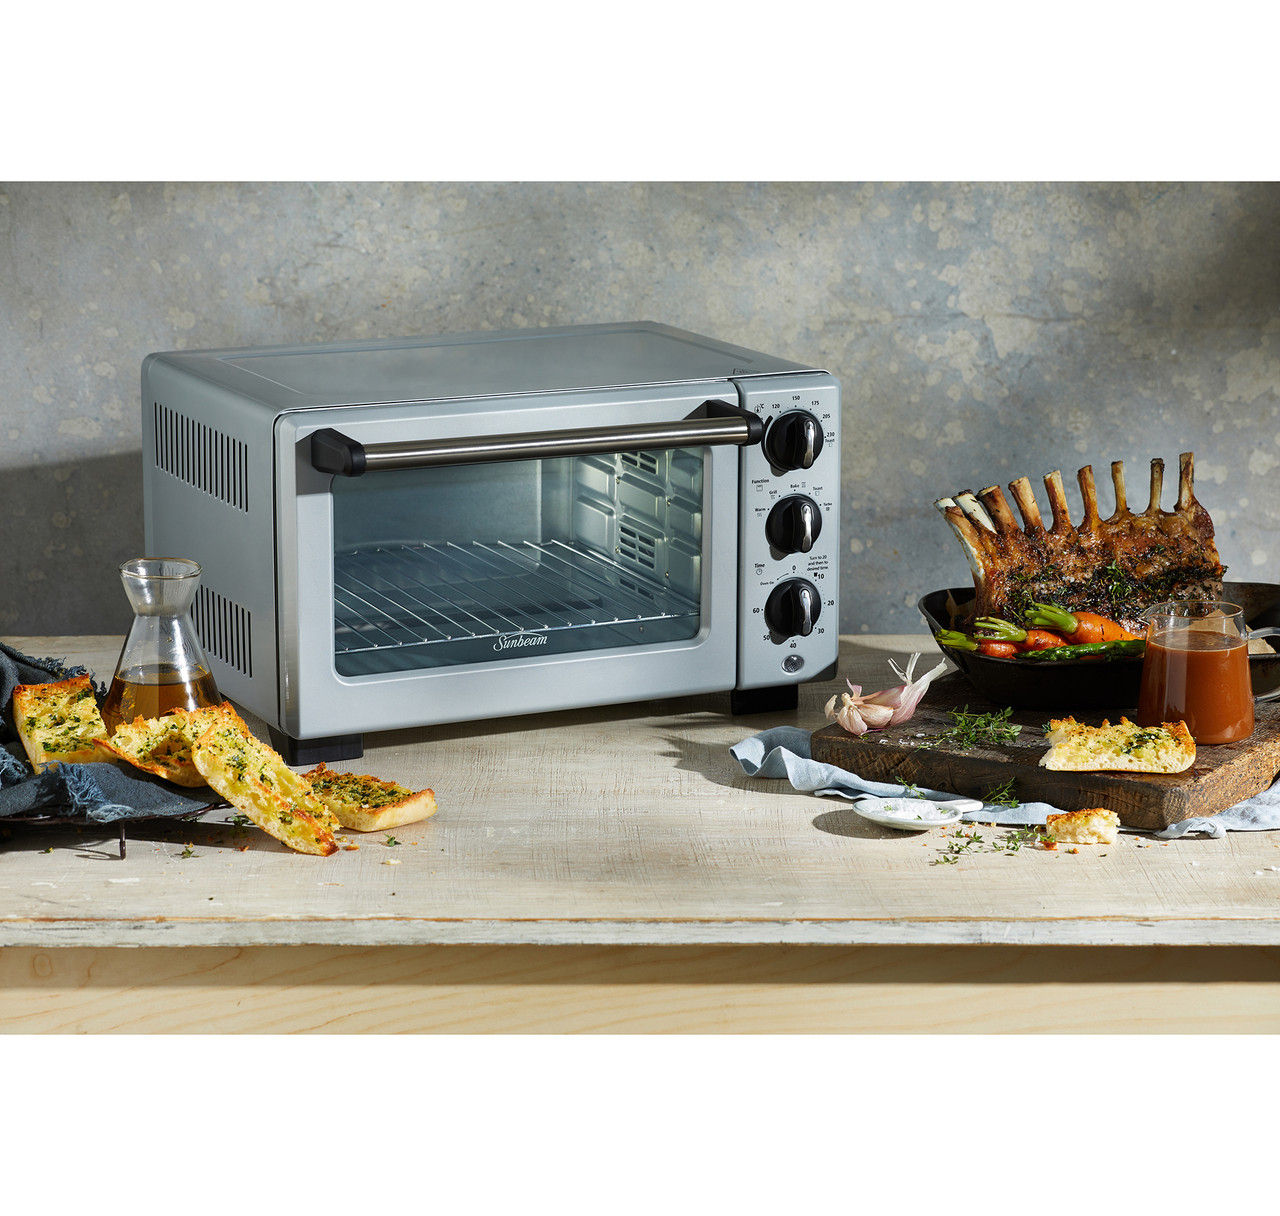 Sunbeam COM3500SS Convection Bake & Grill 18L Compact Oven - Silver